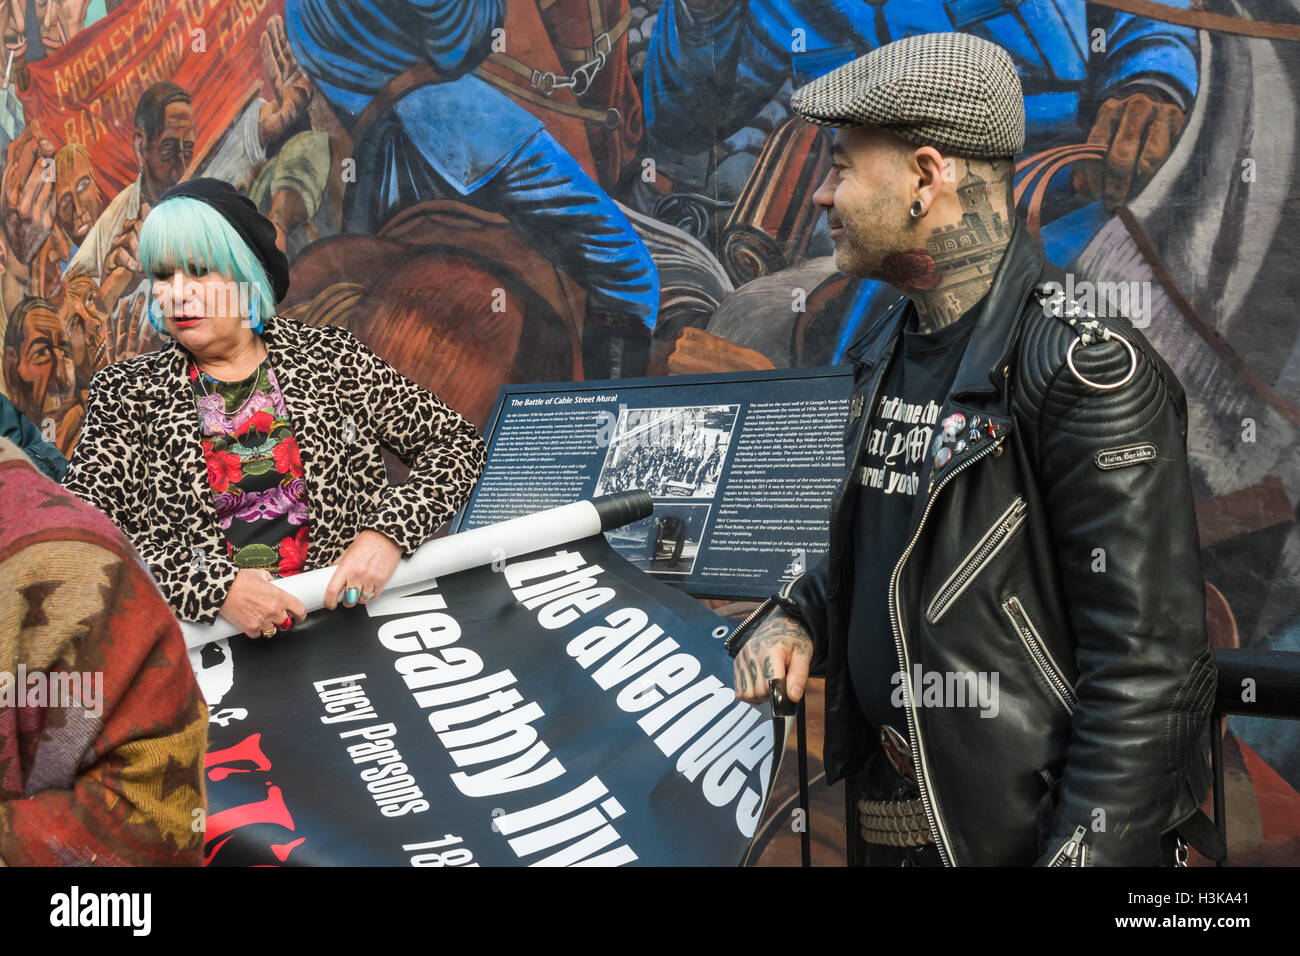 London, UK. 9th October 2016. Jane Nicholl of Class War rolls up the banner at the end of their rally in front of - Stock Image